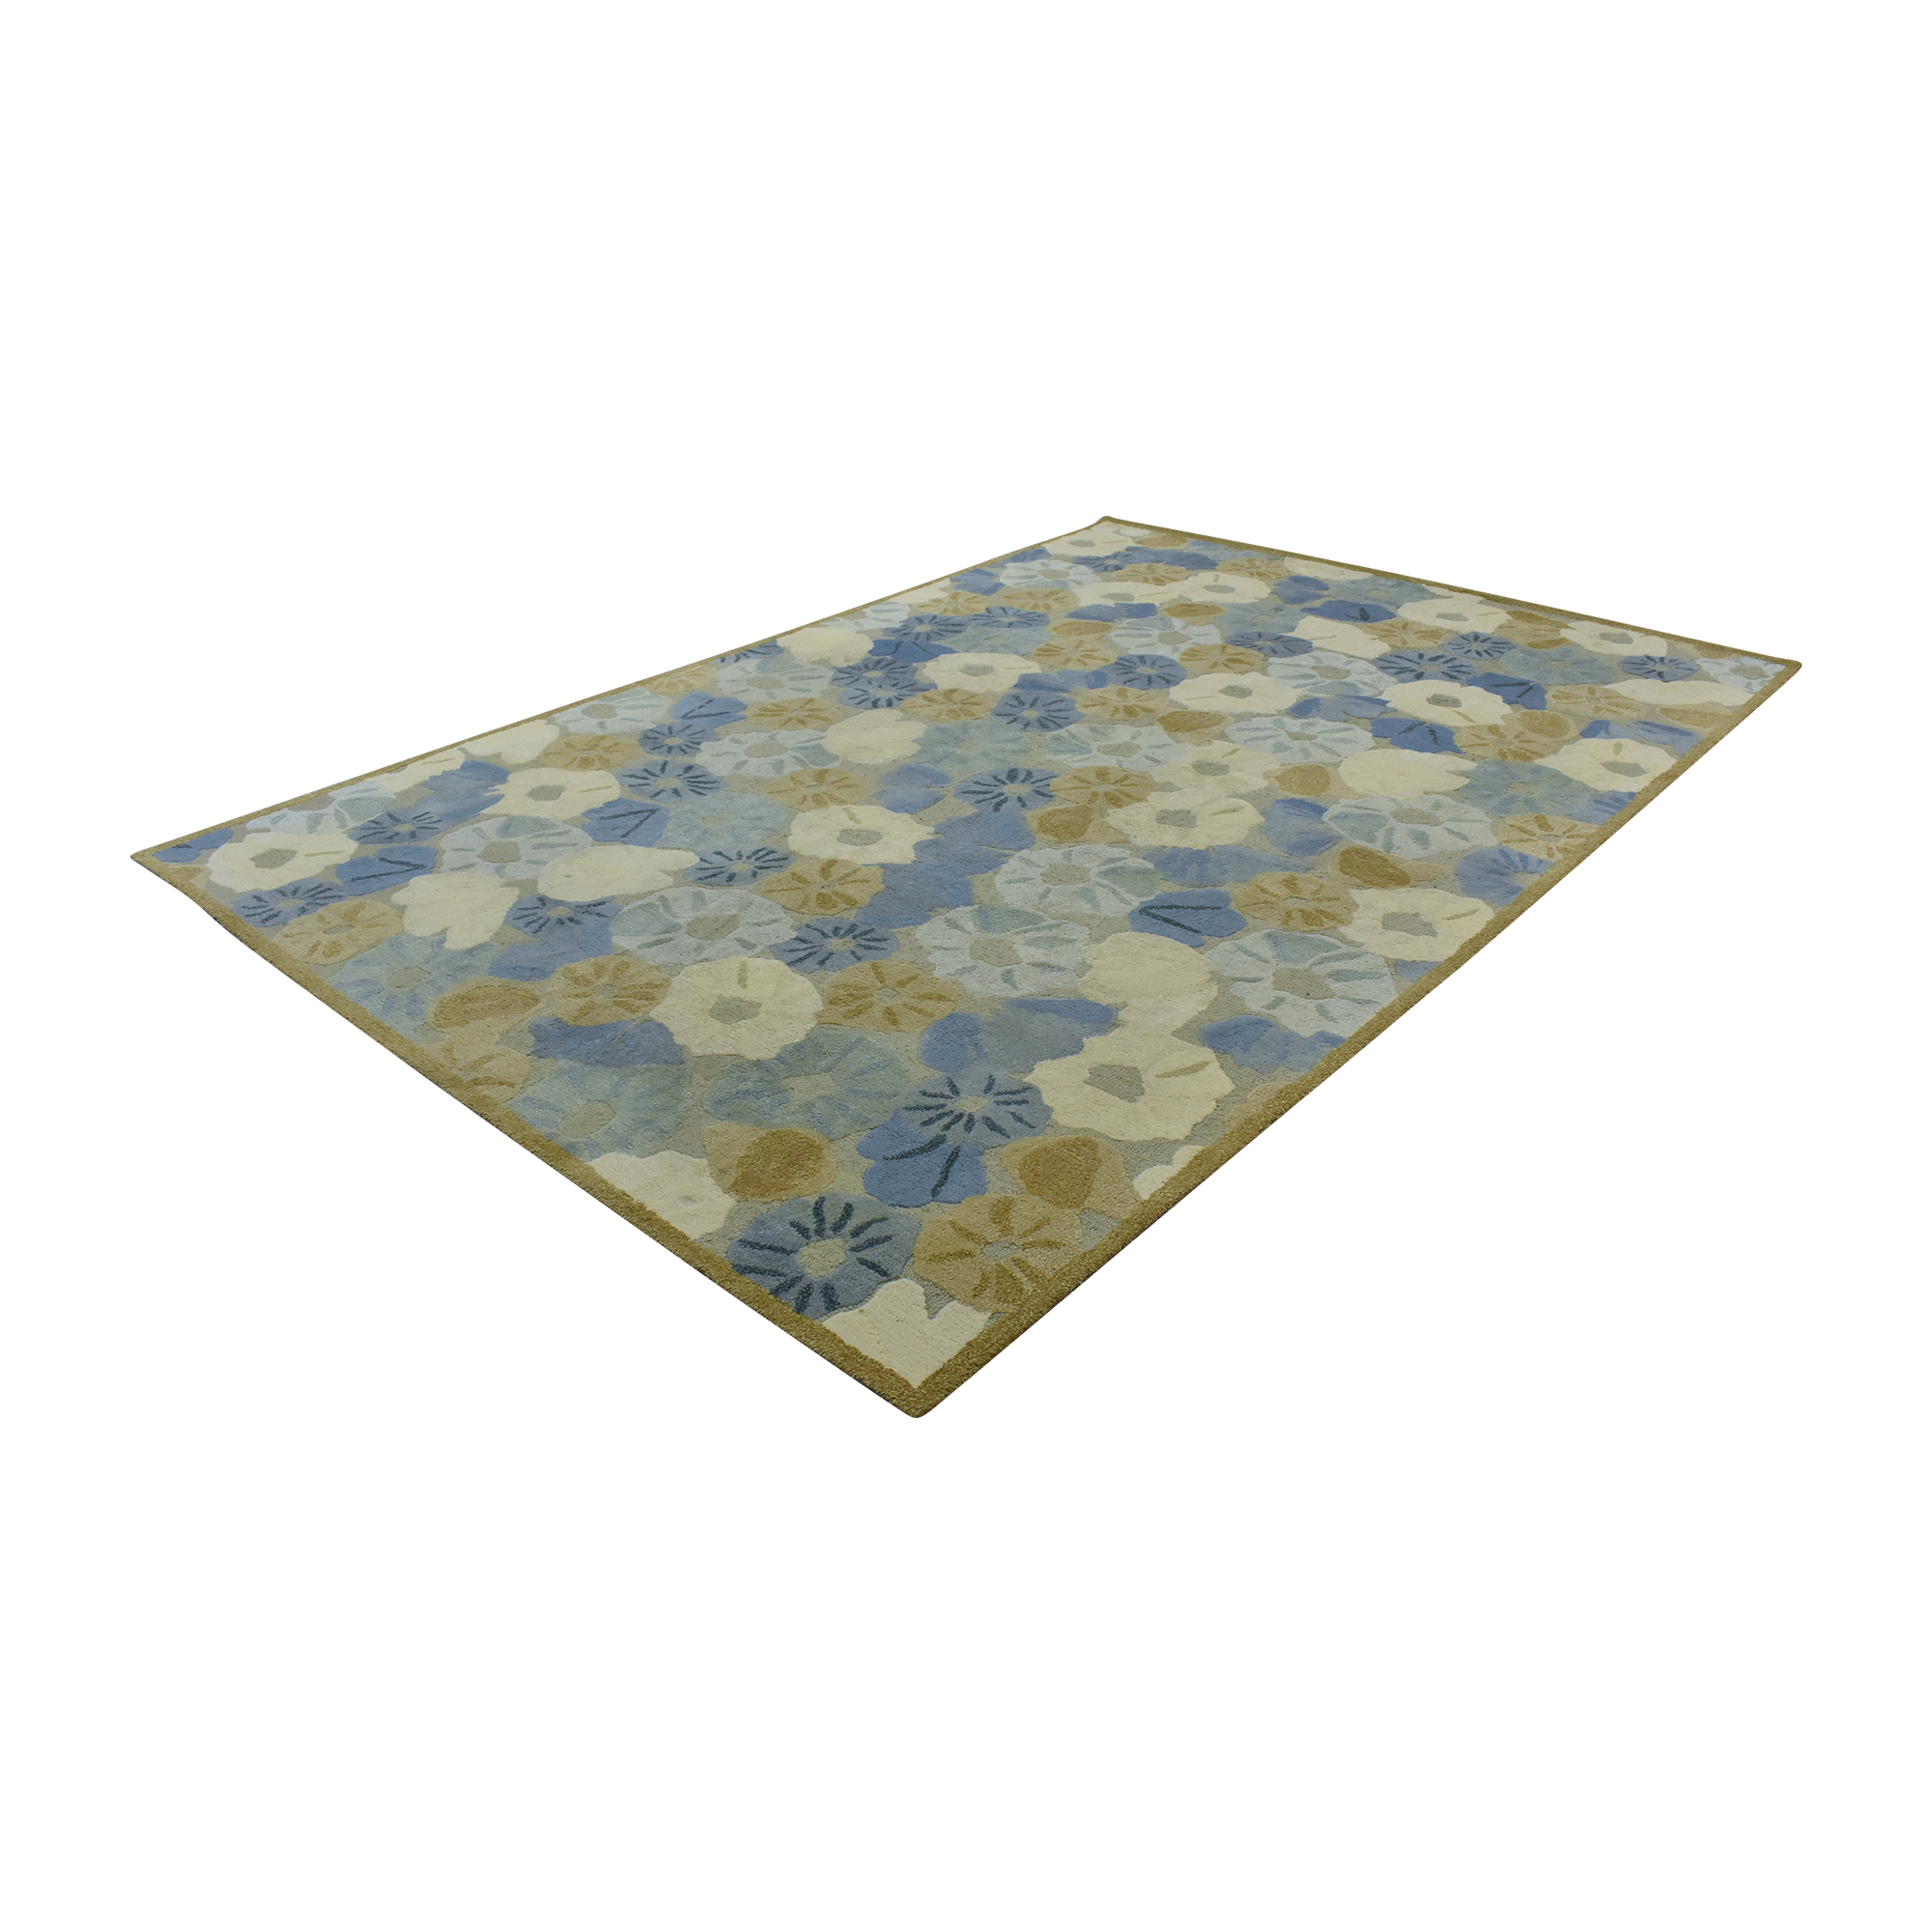 Abstract Floral Rug ma